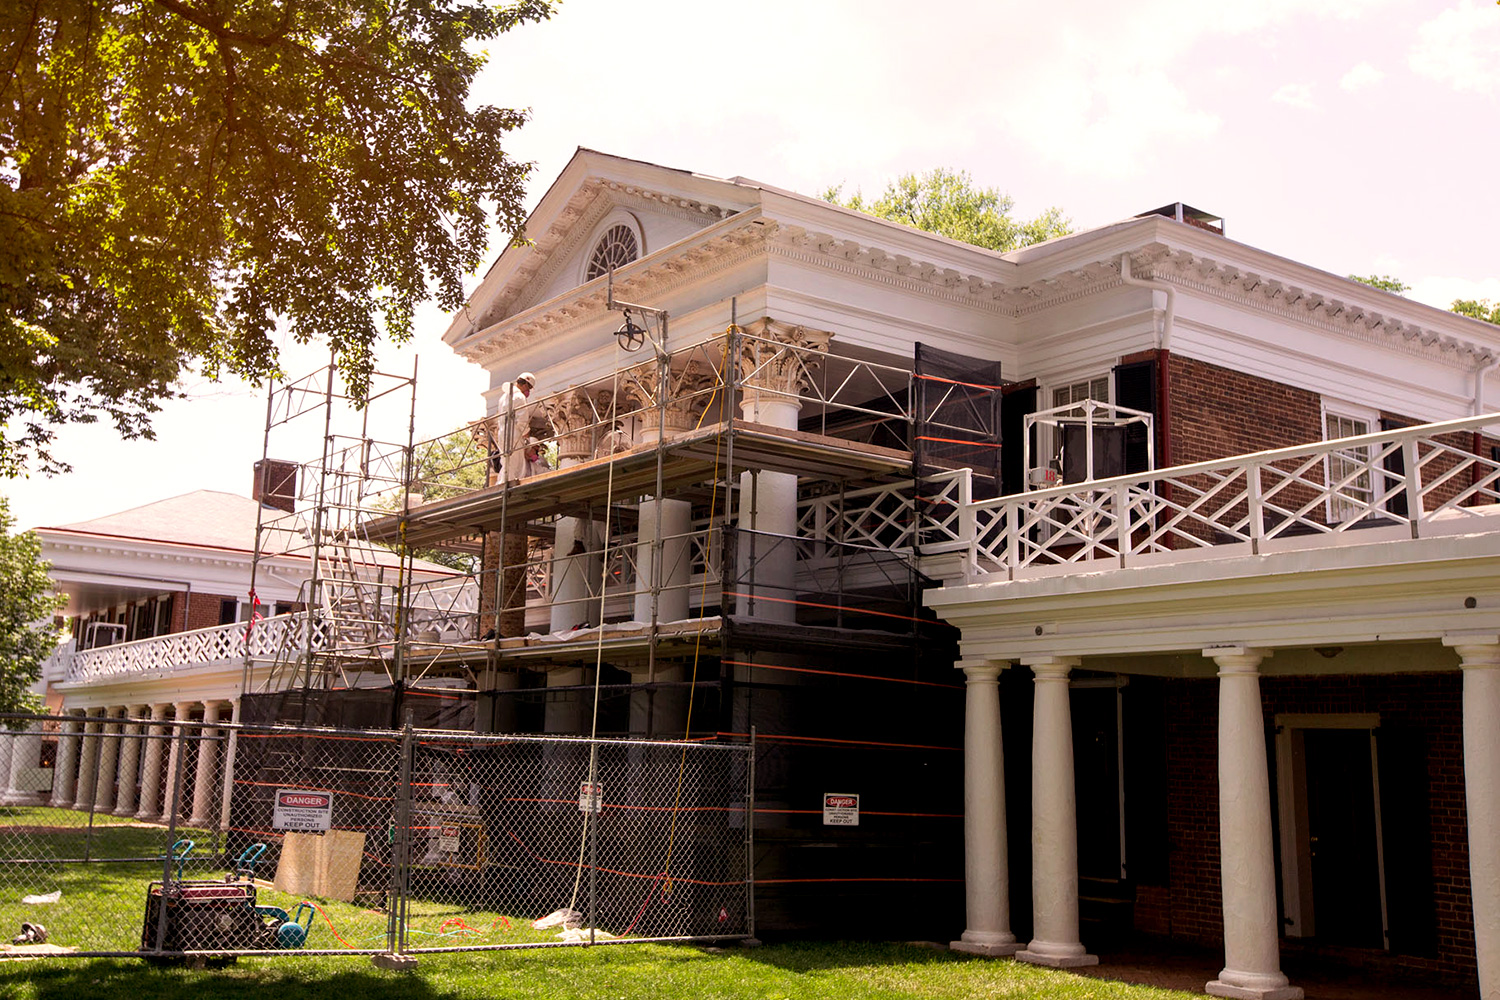 The interior work will be completed in the summer and the exterior work will extend into the fall.